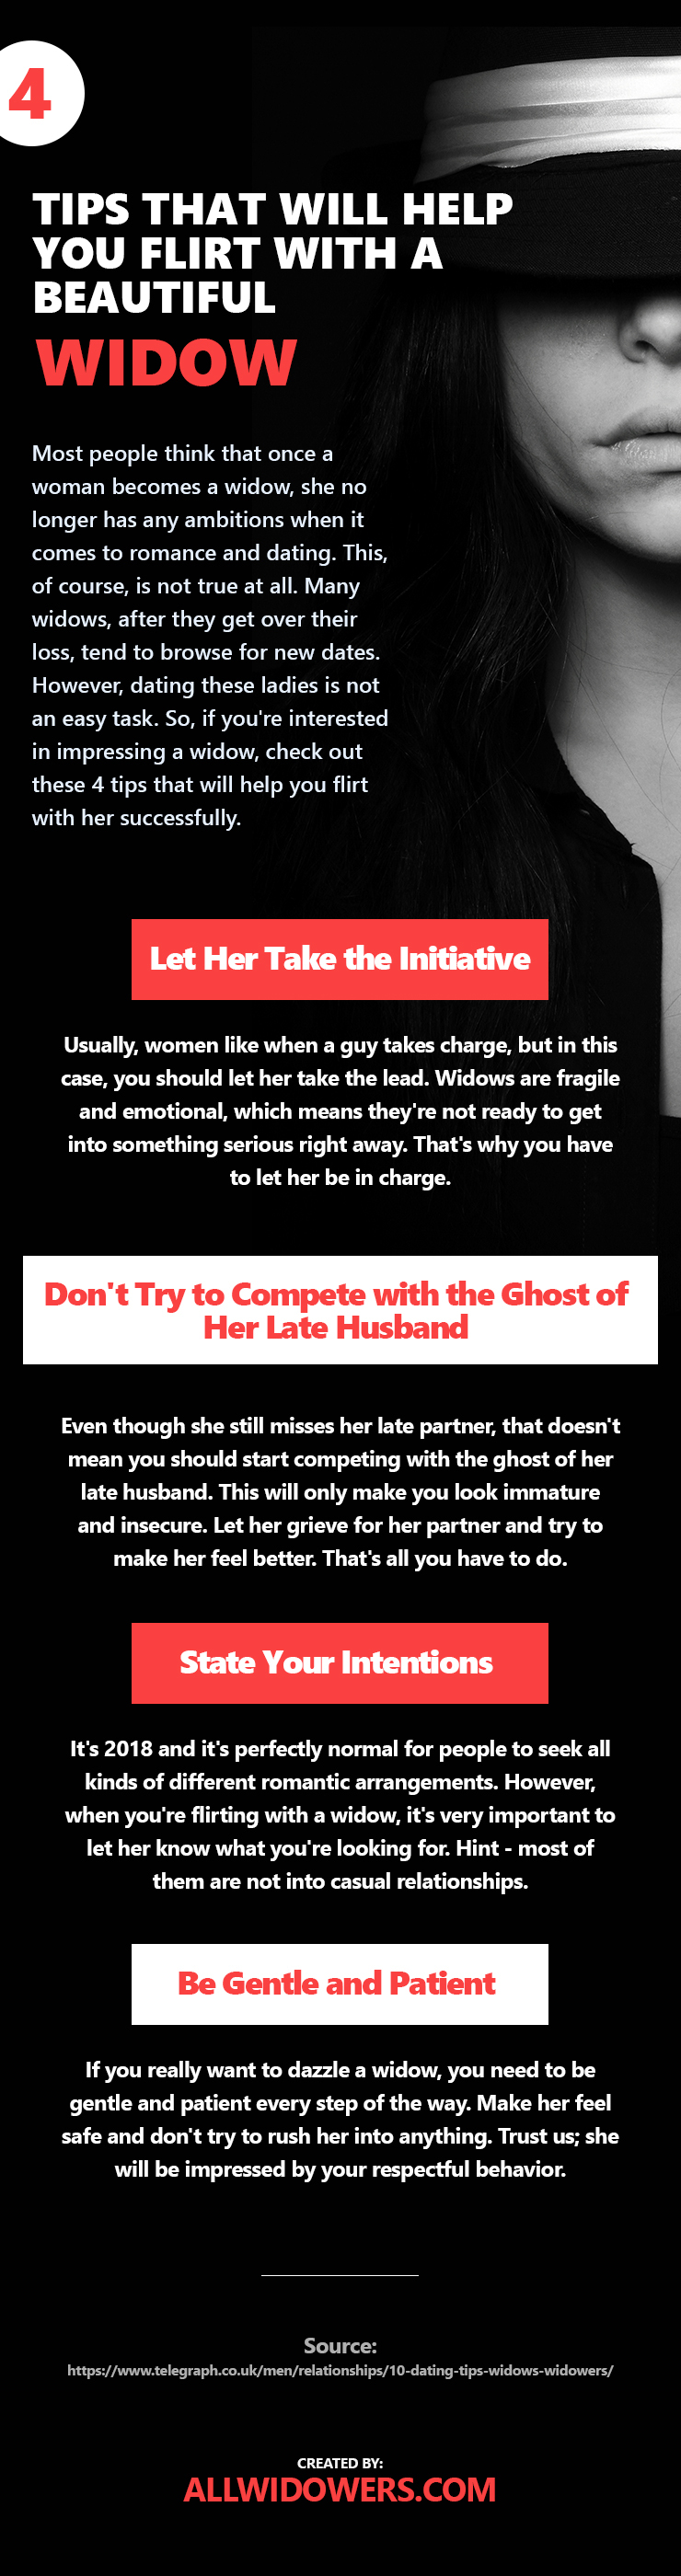 4 Tips That Will Help You Flirt with a Beautiful Widow